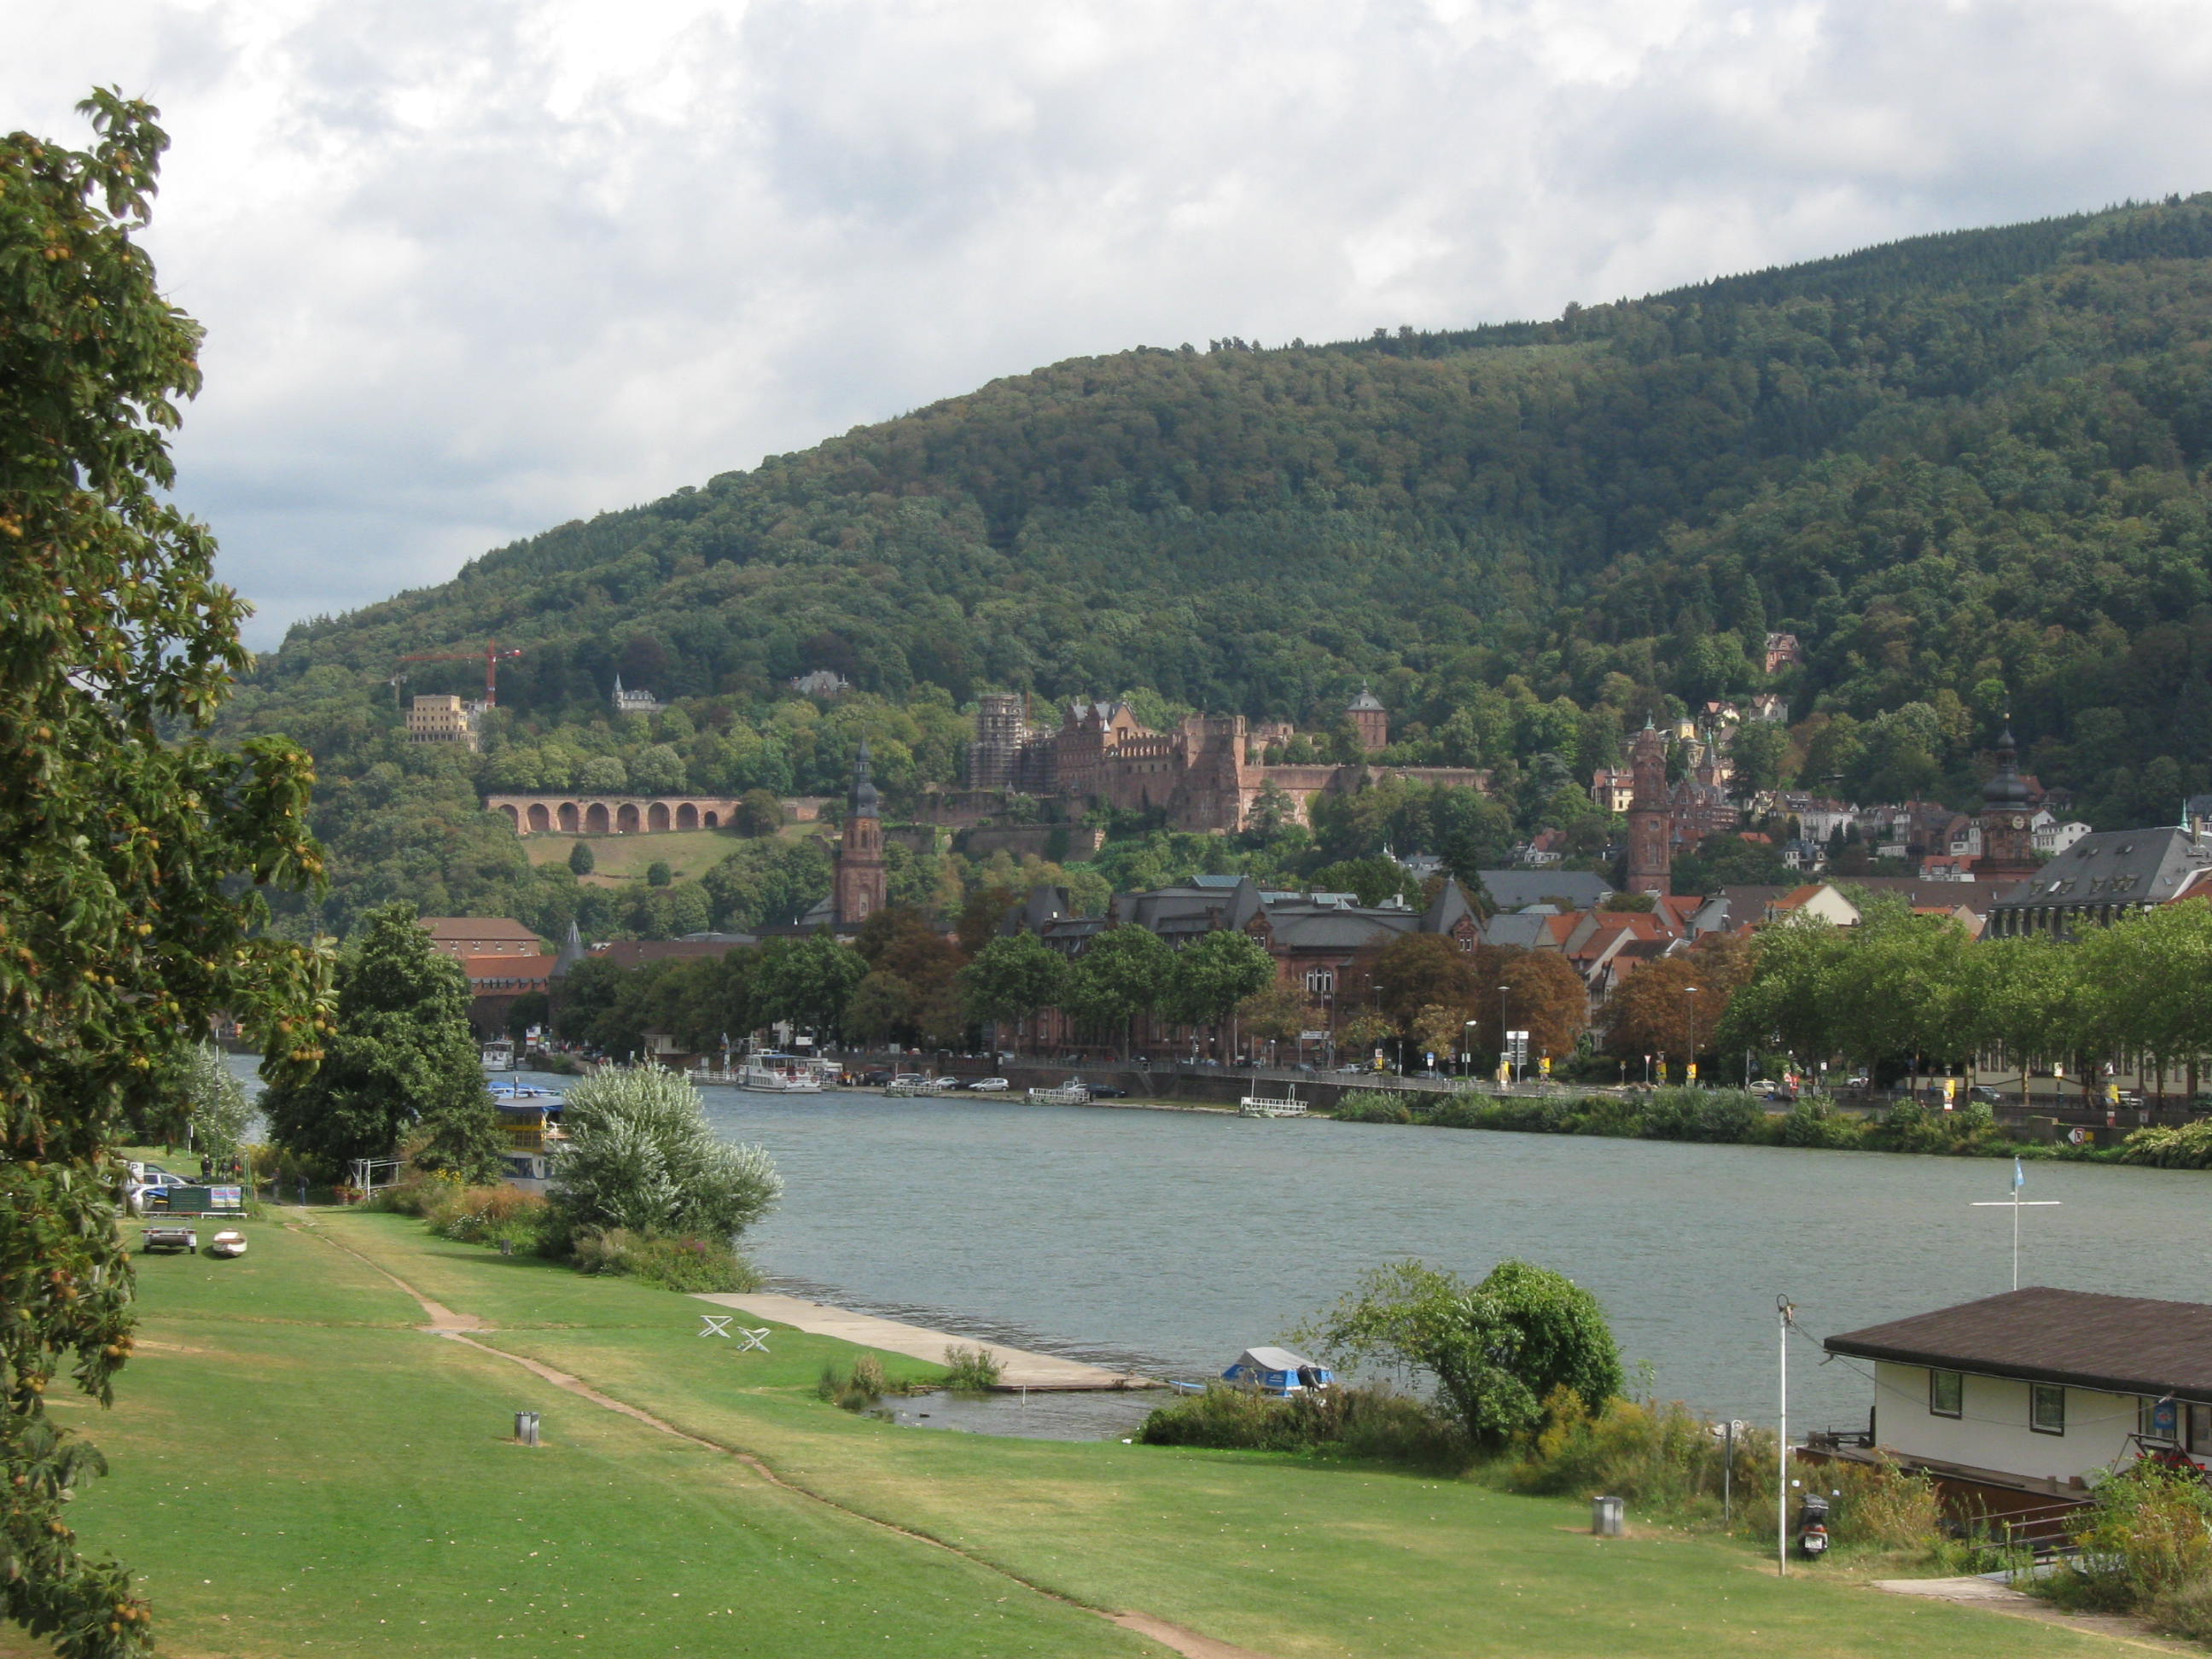 Heidelberg Schloss from the Theodor-Heuss Bridge (new bridge)